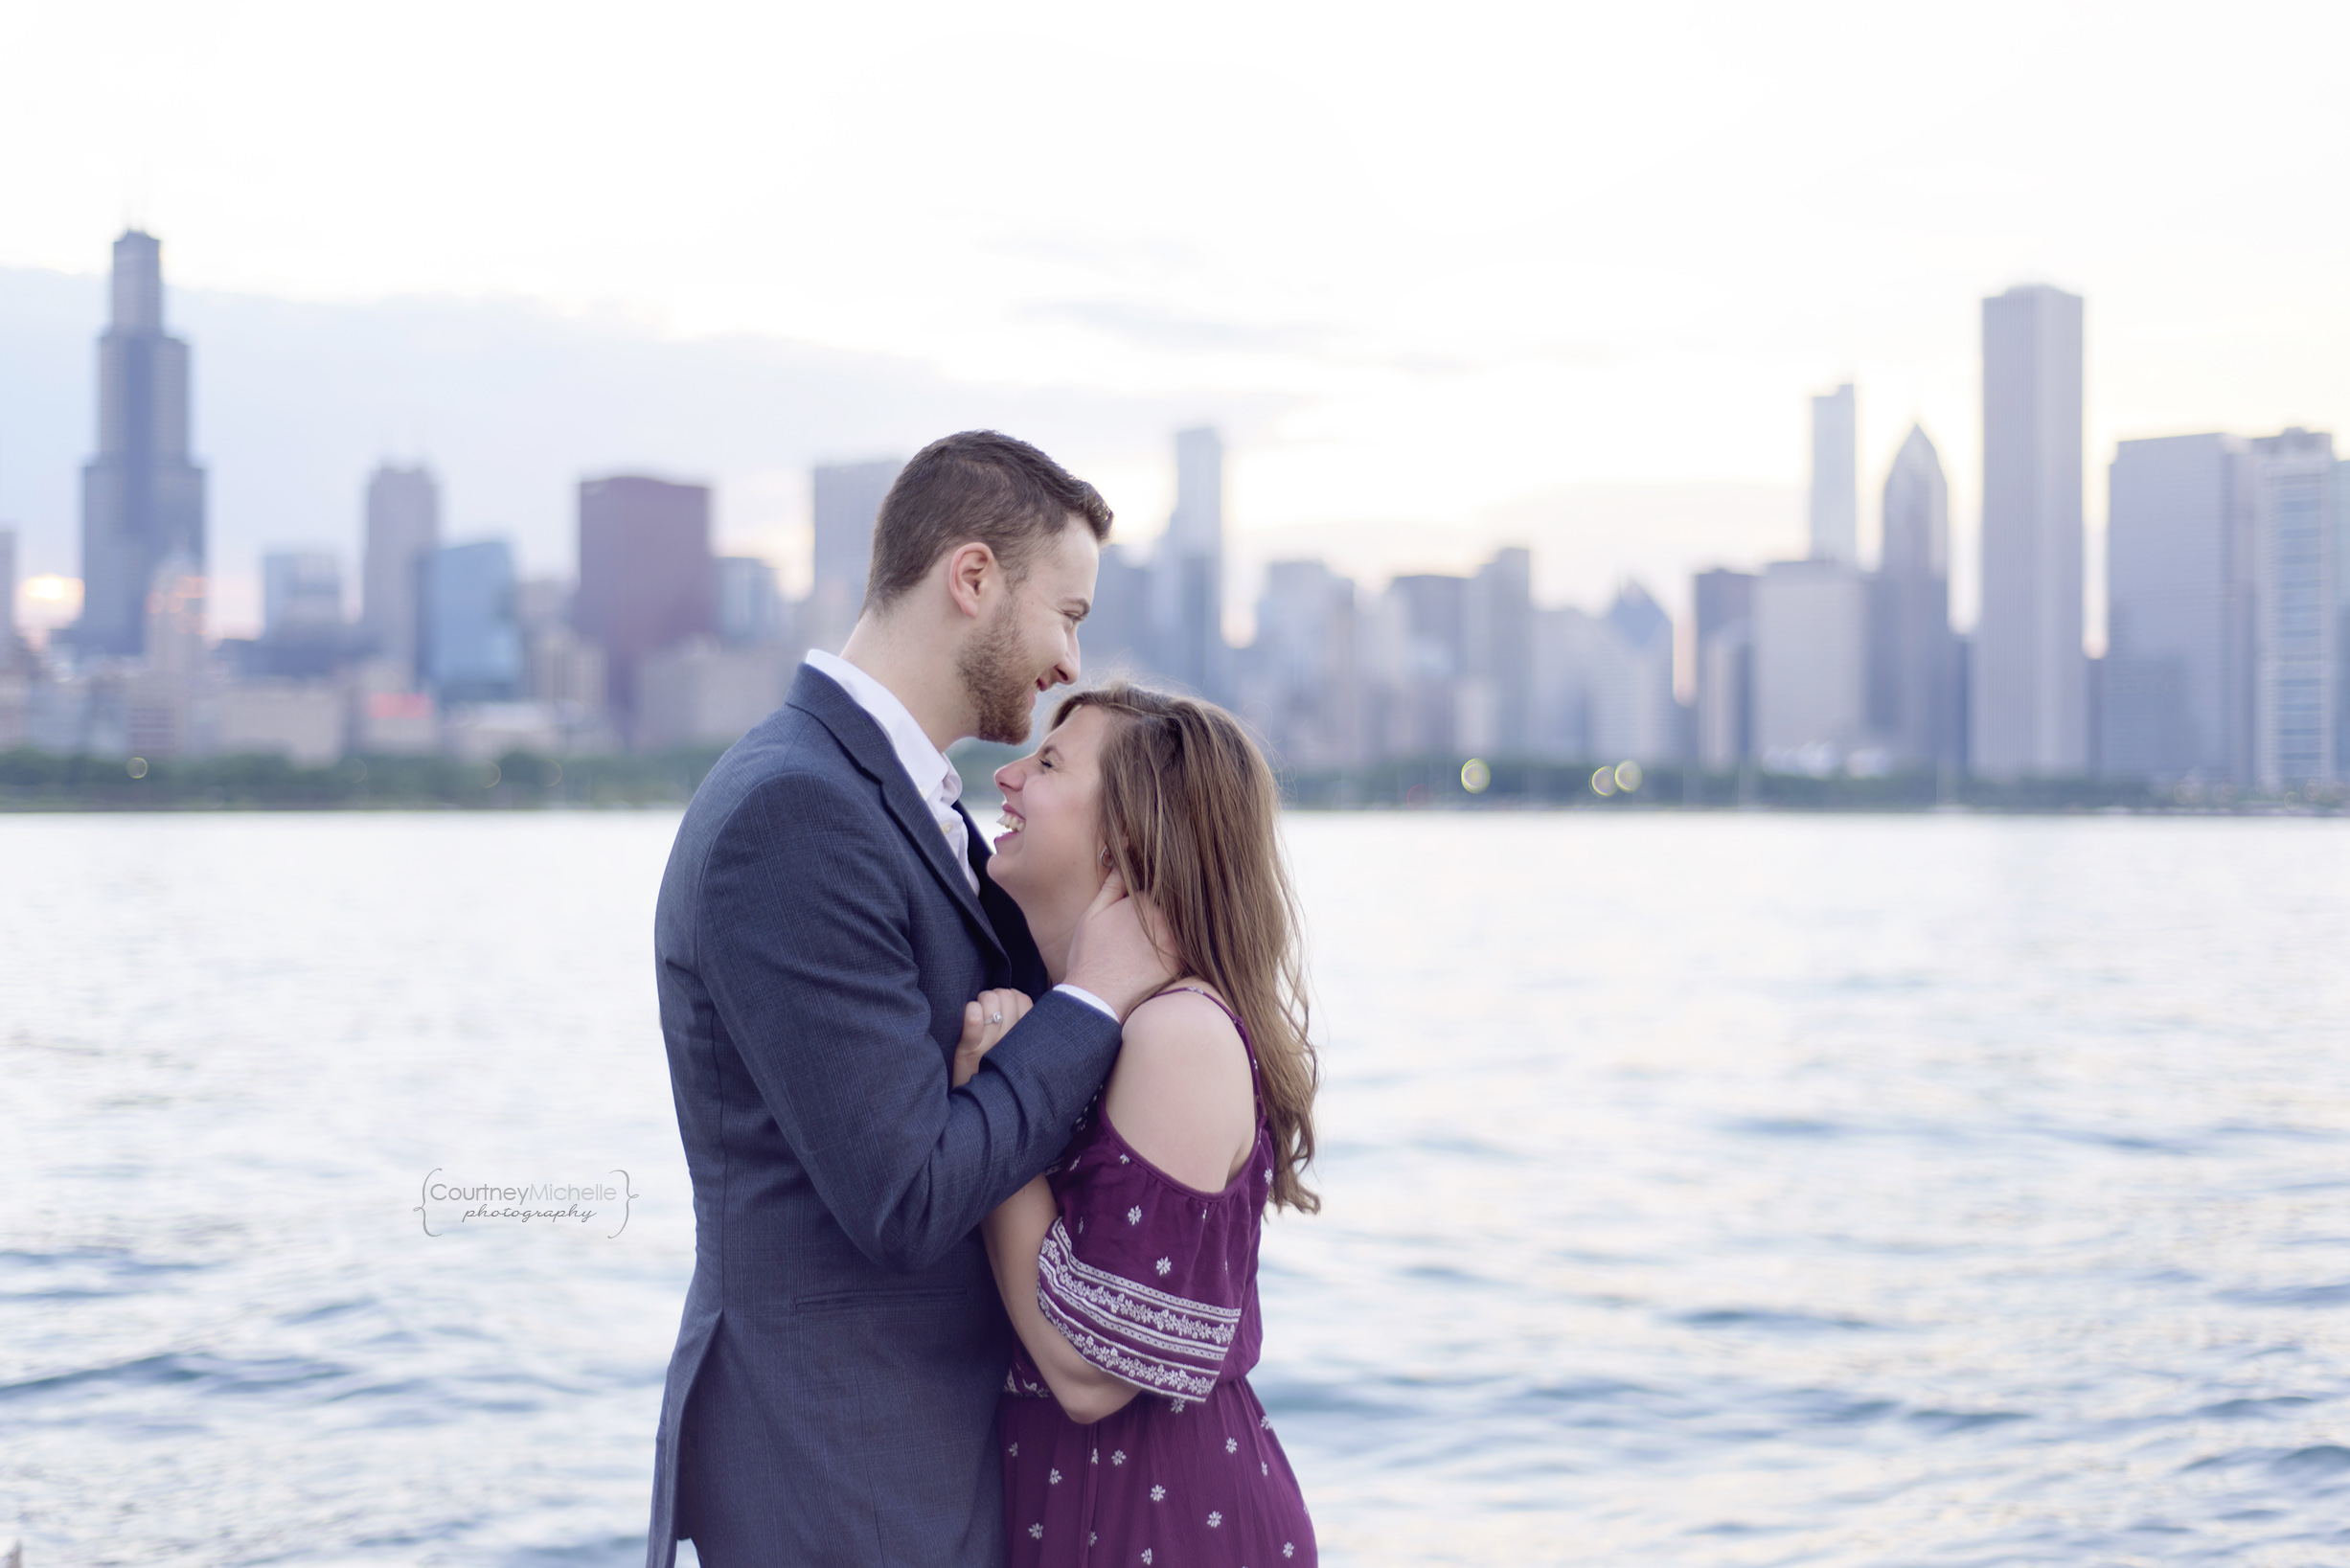 chicago-engagement-couple-laughing-skyline-at-sunset-adler-planetarium-engagement-photography-by-courtney-laper.jpg